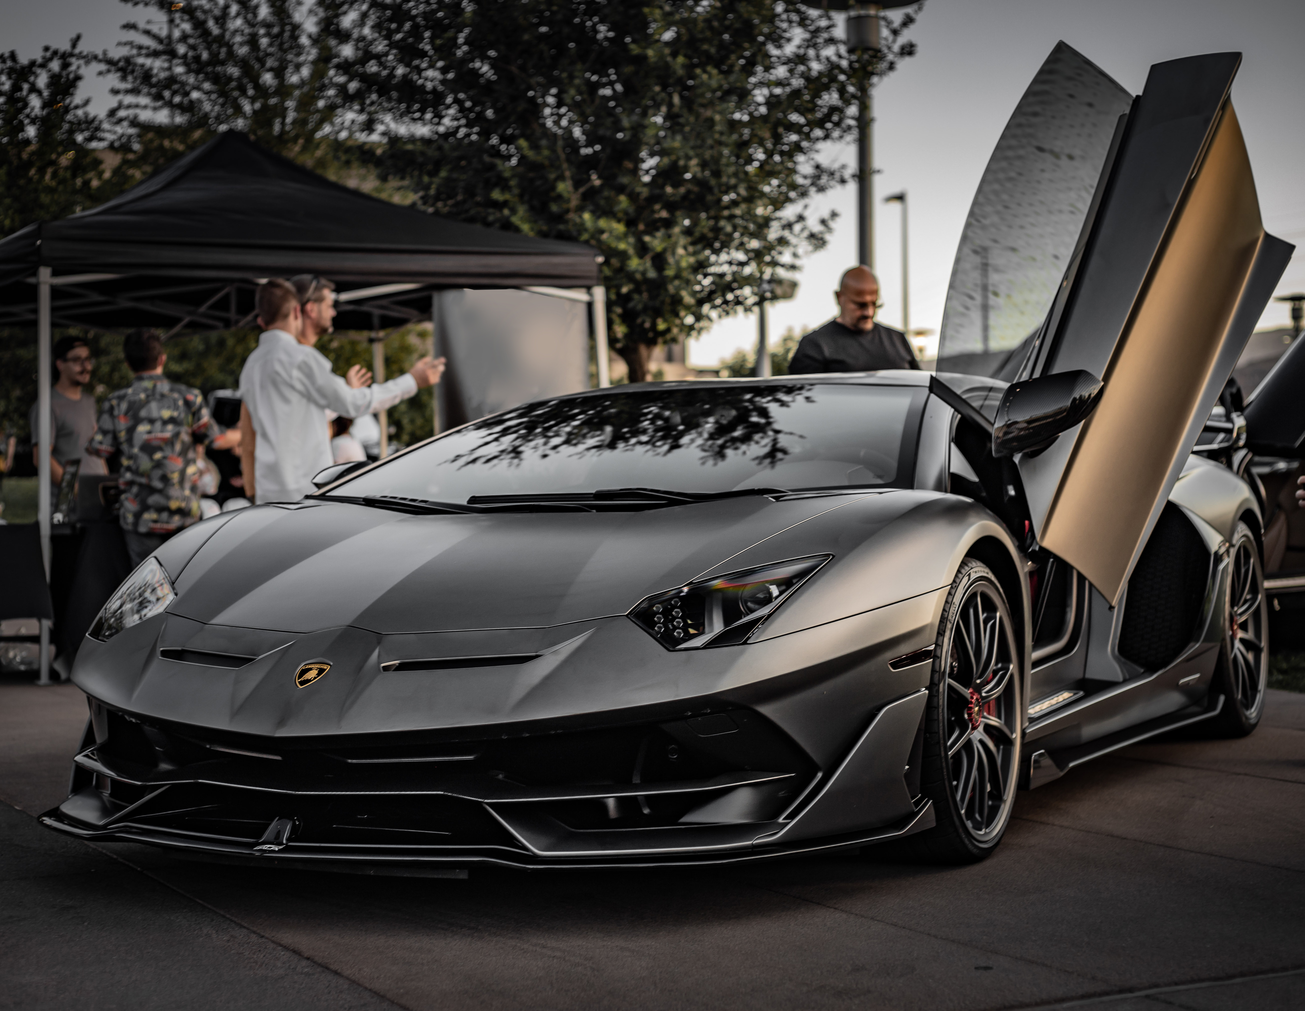 The top 5 supercars to date